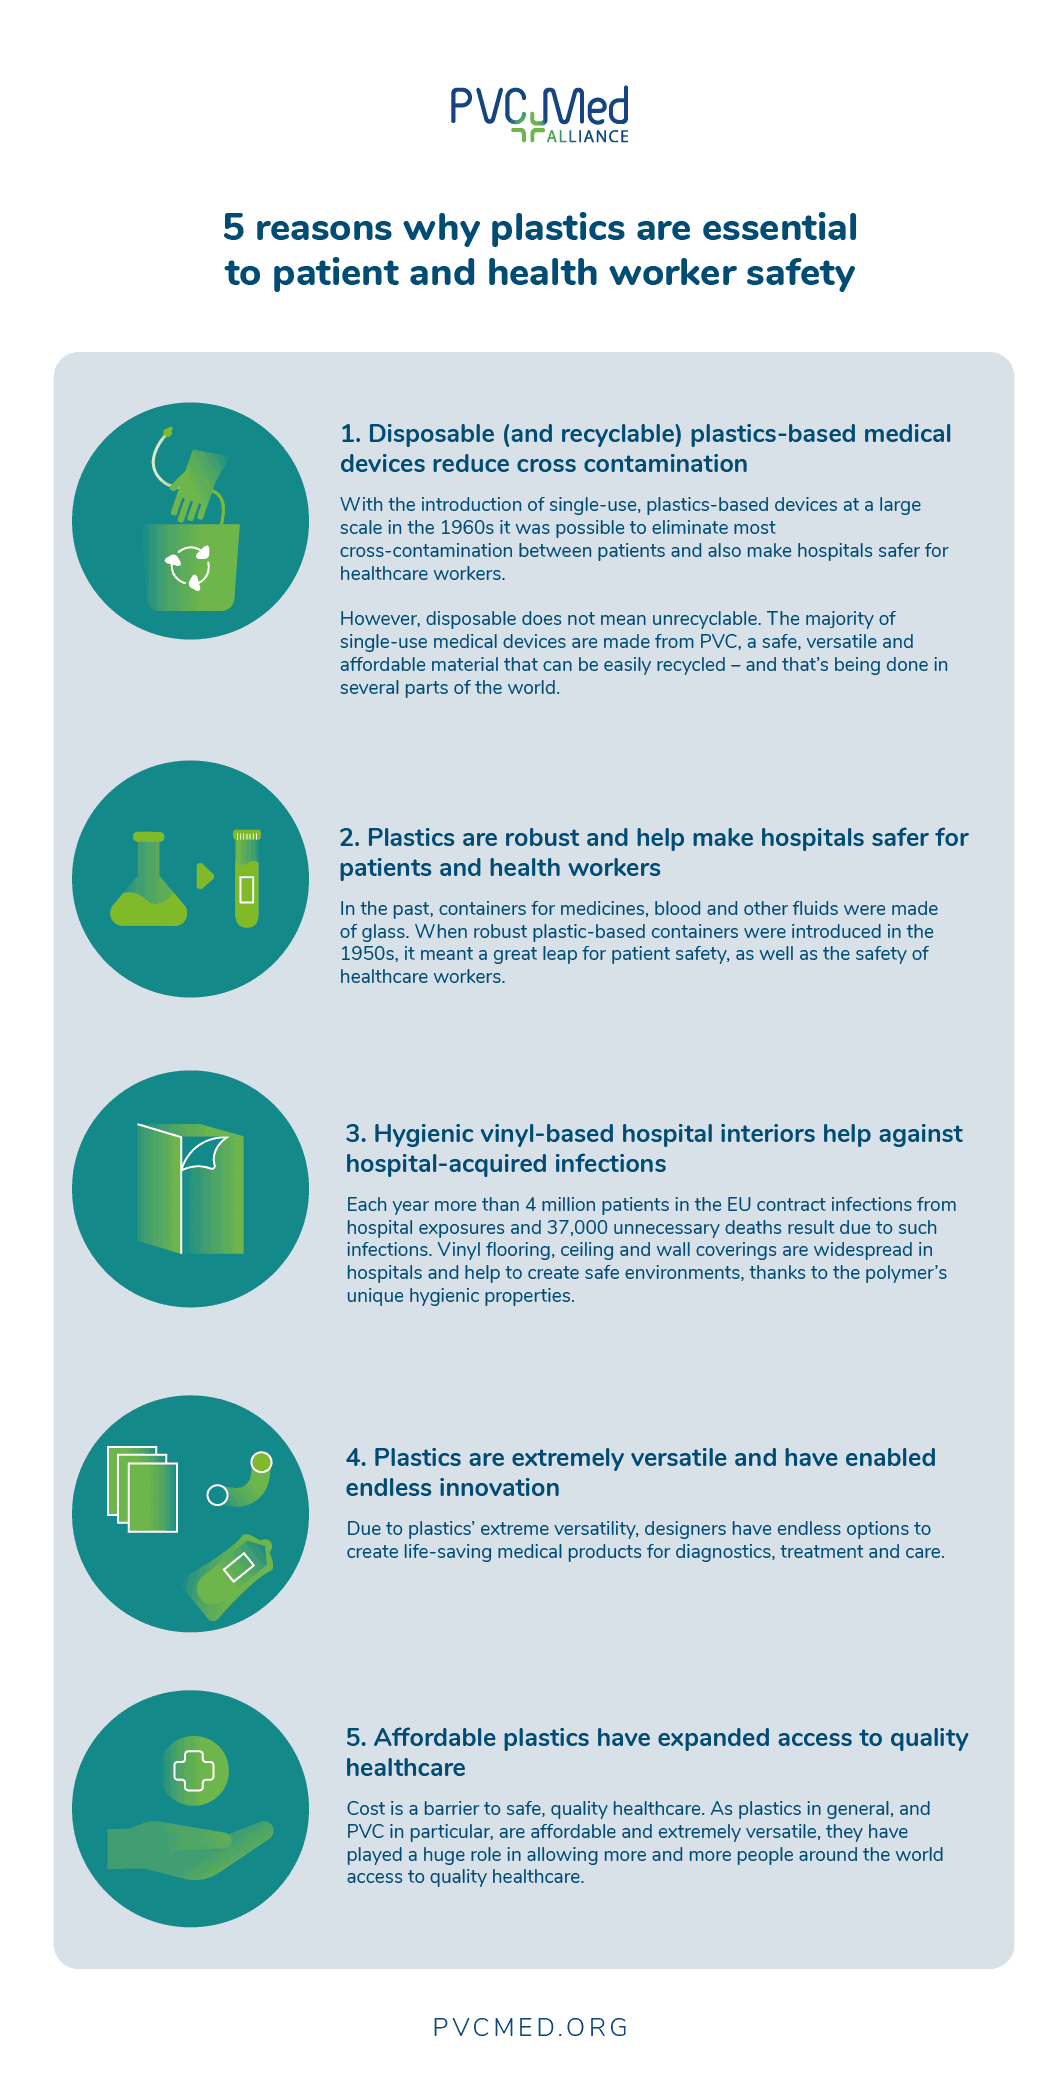 5 reasons why plastics are essential to patient and health worker safety